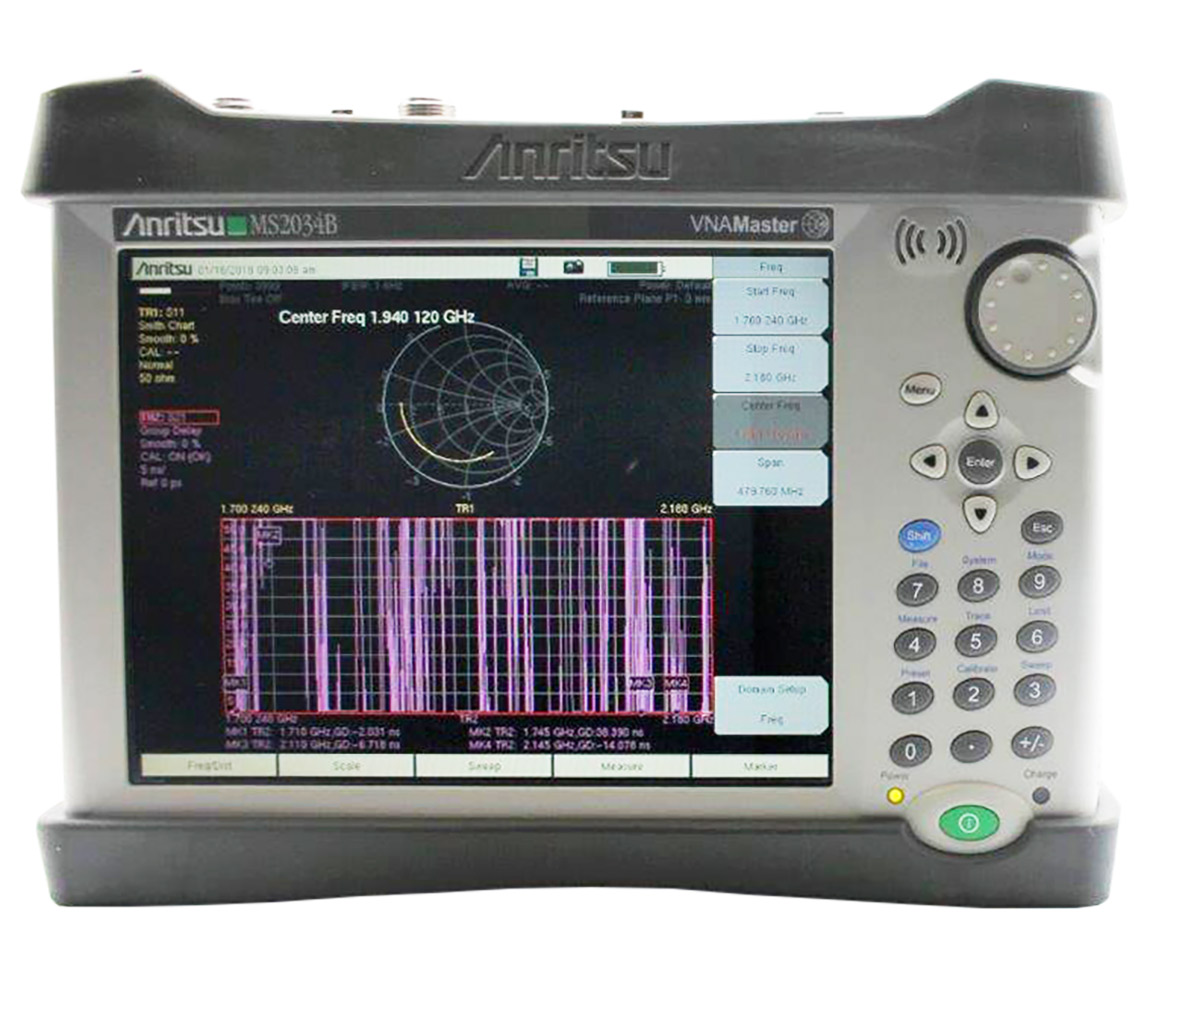 Anritsu MS2034B for Lease or Rent